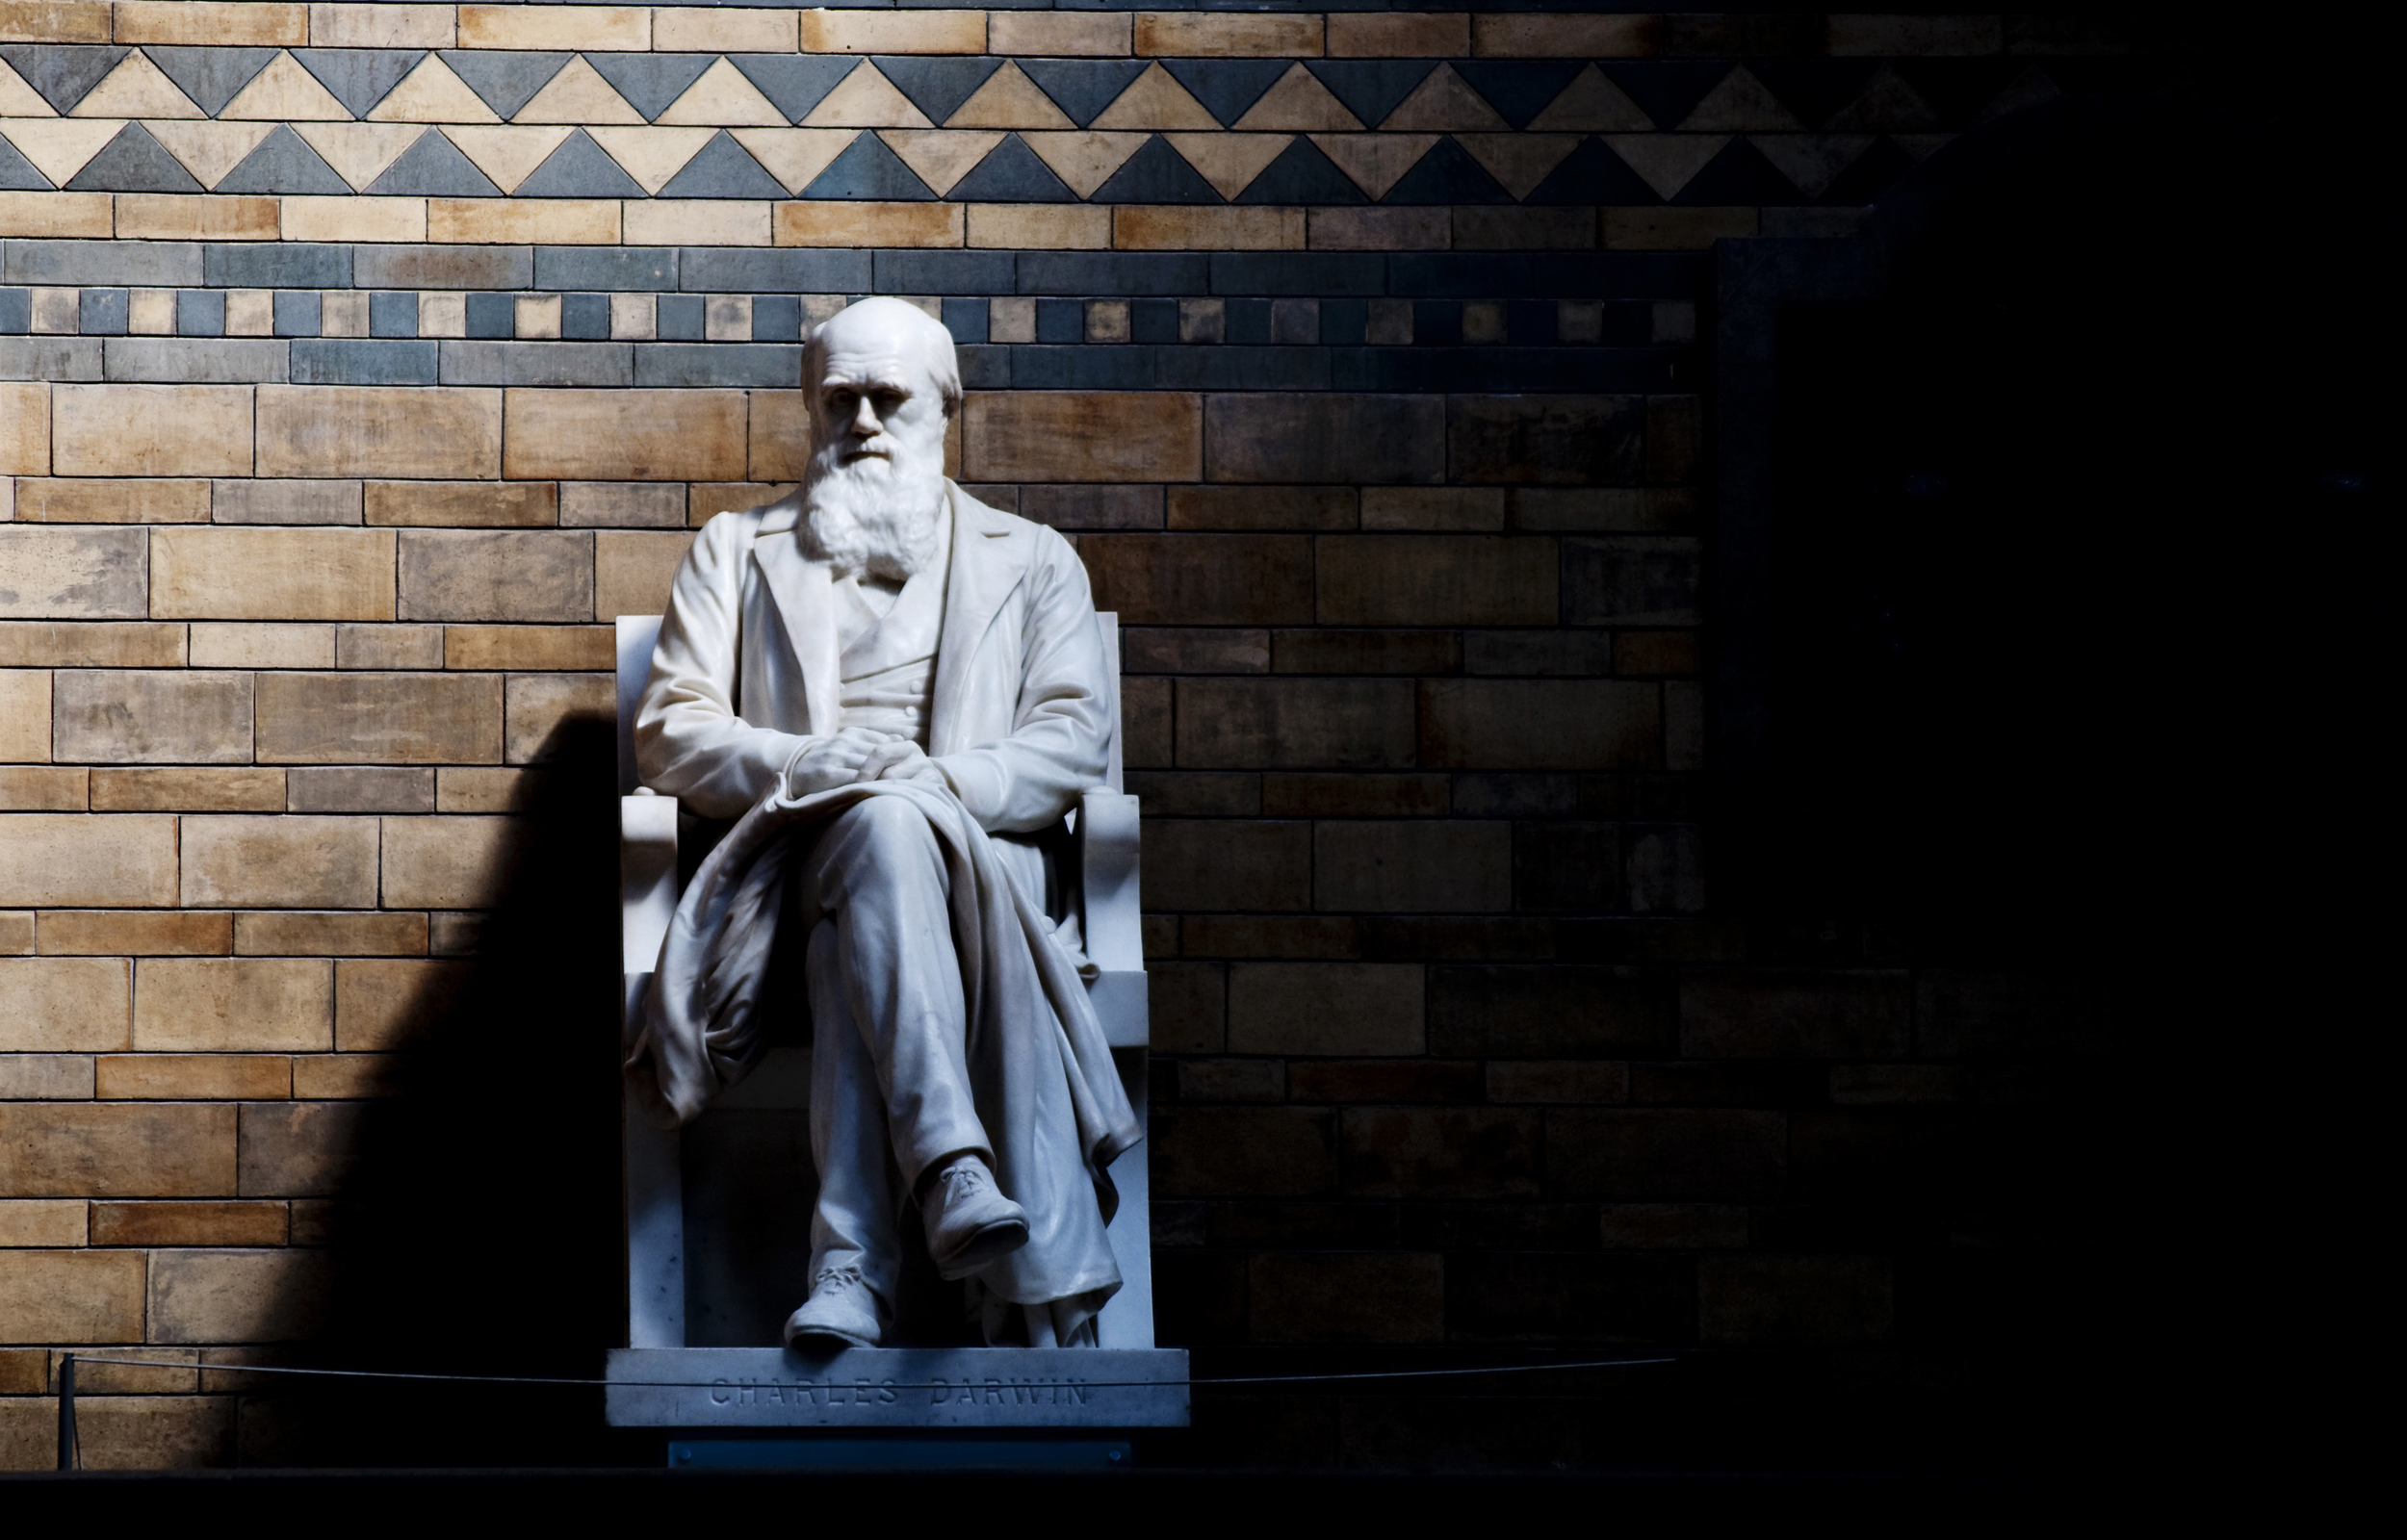 Charles Darwin's statue at the London Natural History Museum.   CGP Grey/Flickr  (CC BY 2.0)